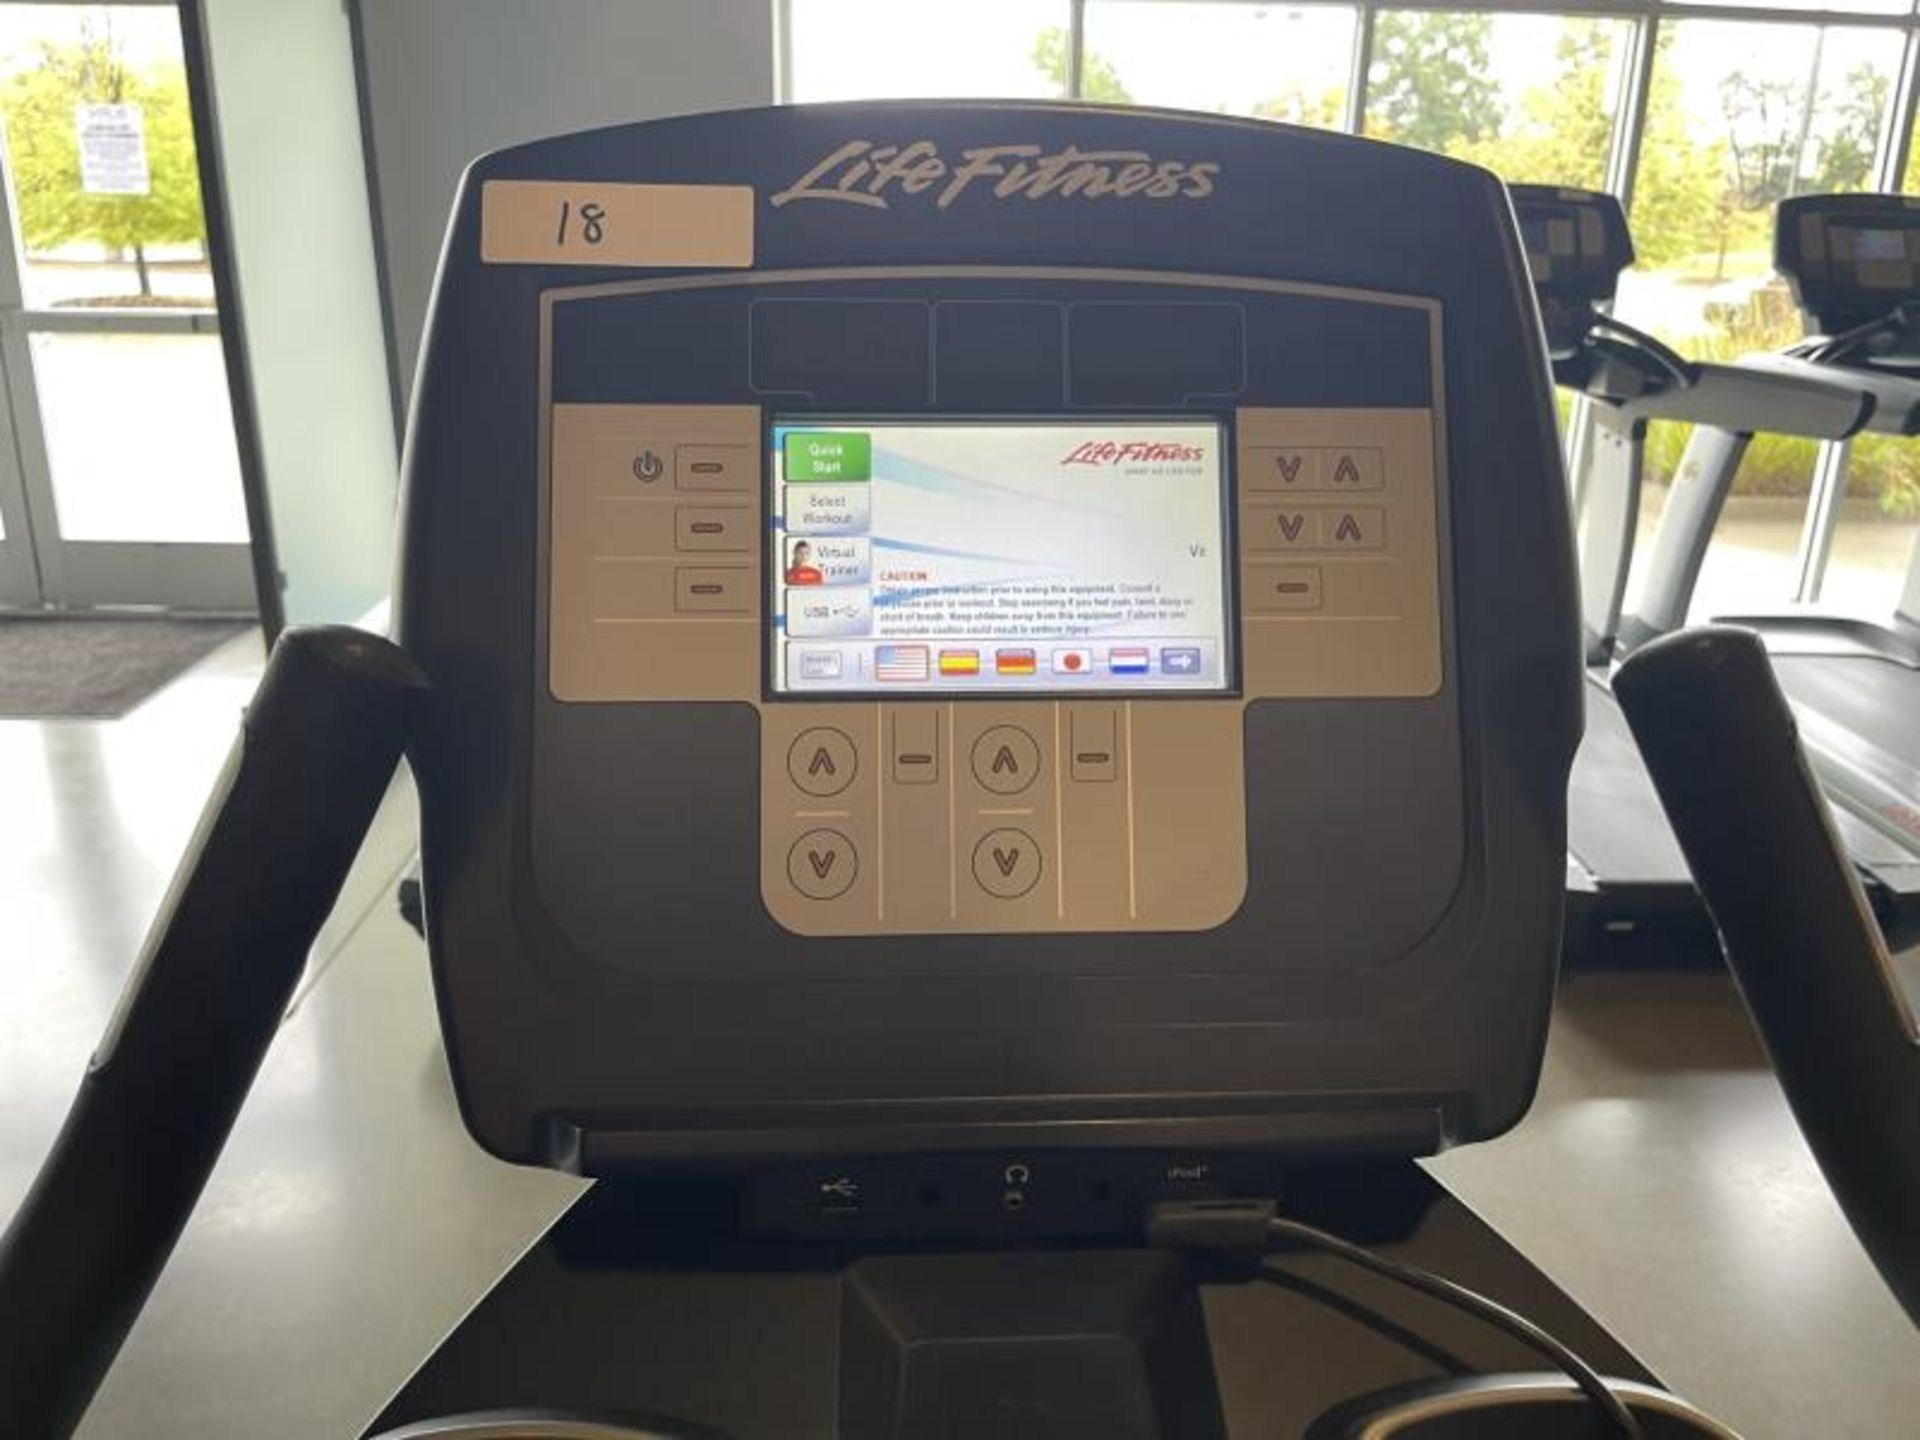 Life Fitness Exercise Bike M: 95CLifecycle, SN: CLV102818 - Image 4 of 4